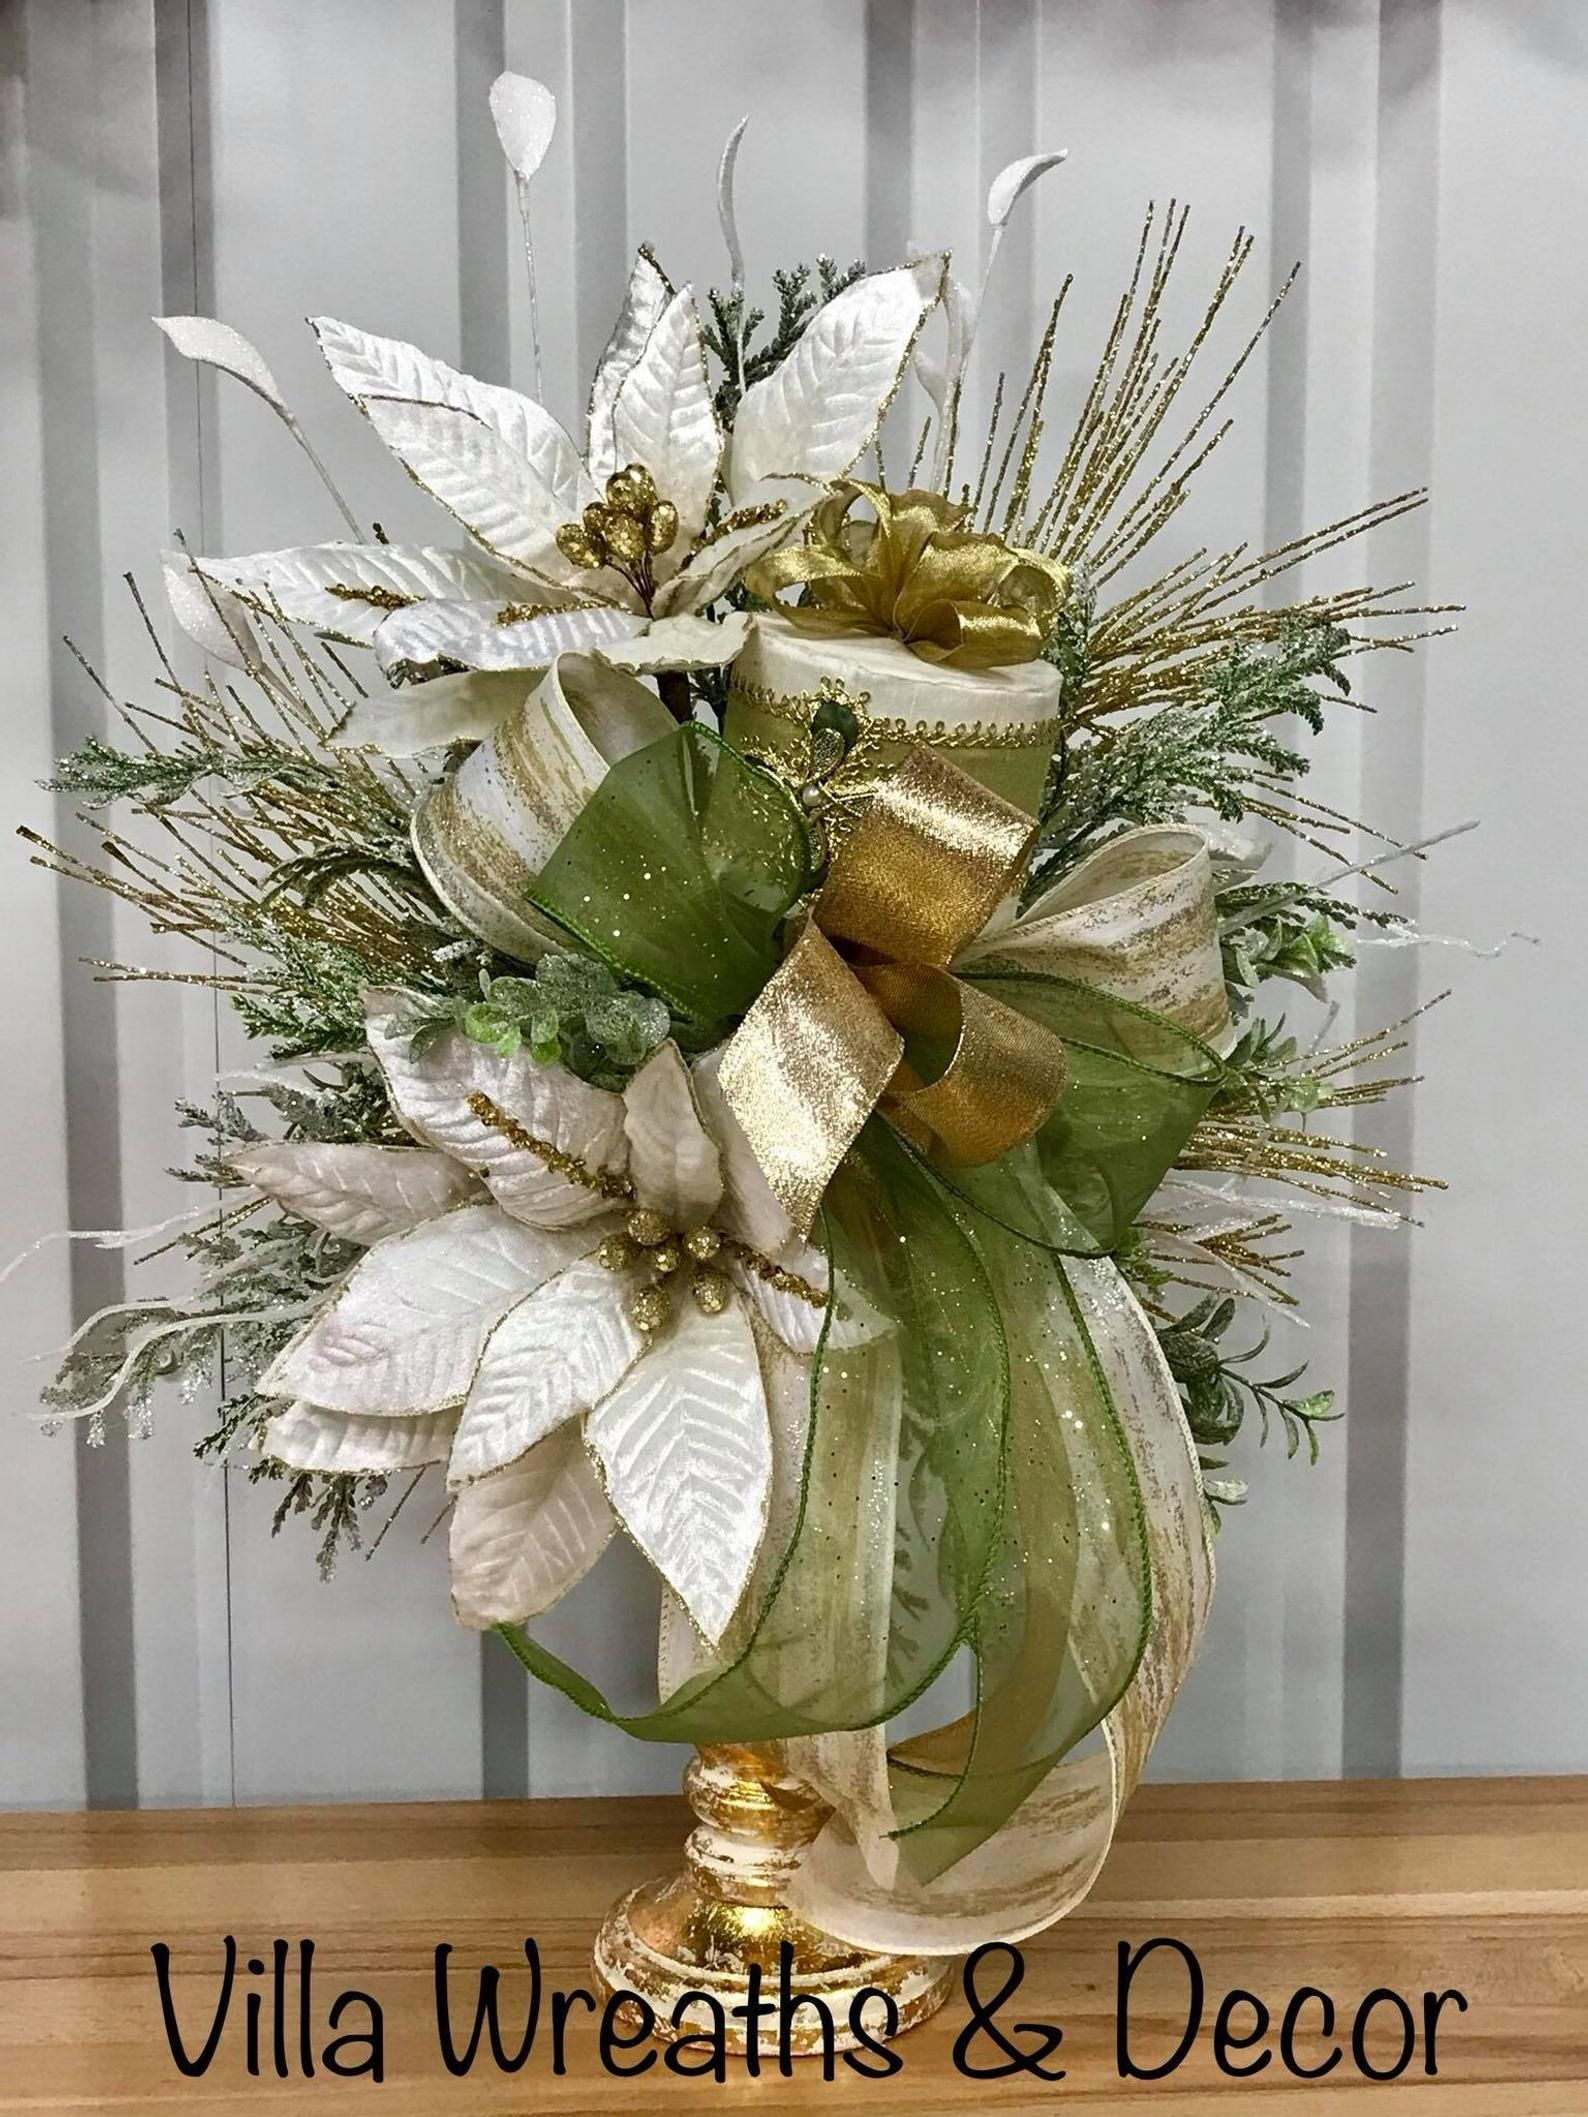 White Poinsettia And Sage Green Arrangements Poinsettia Centerpiece Christmas Centerpiece Elegant Centerpiece Poinsettia Centerpiece Christmas Centerpieces Christmas Flower Arrangements